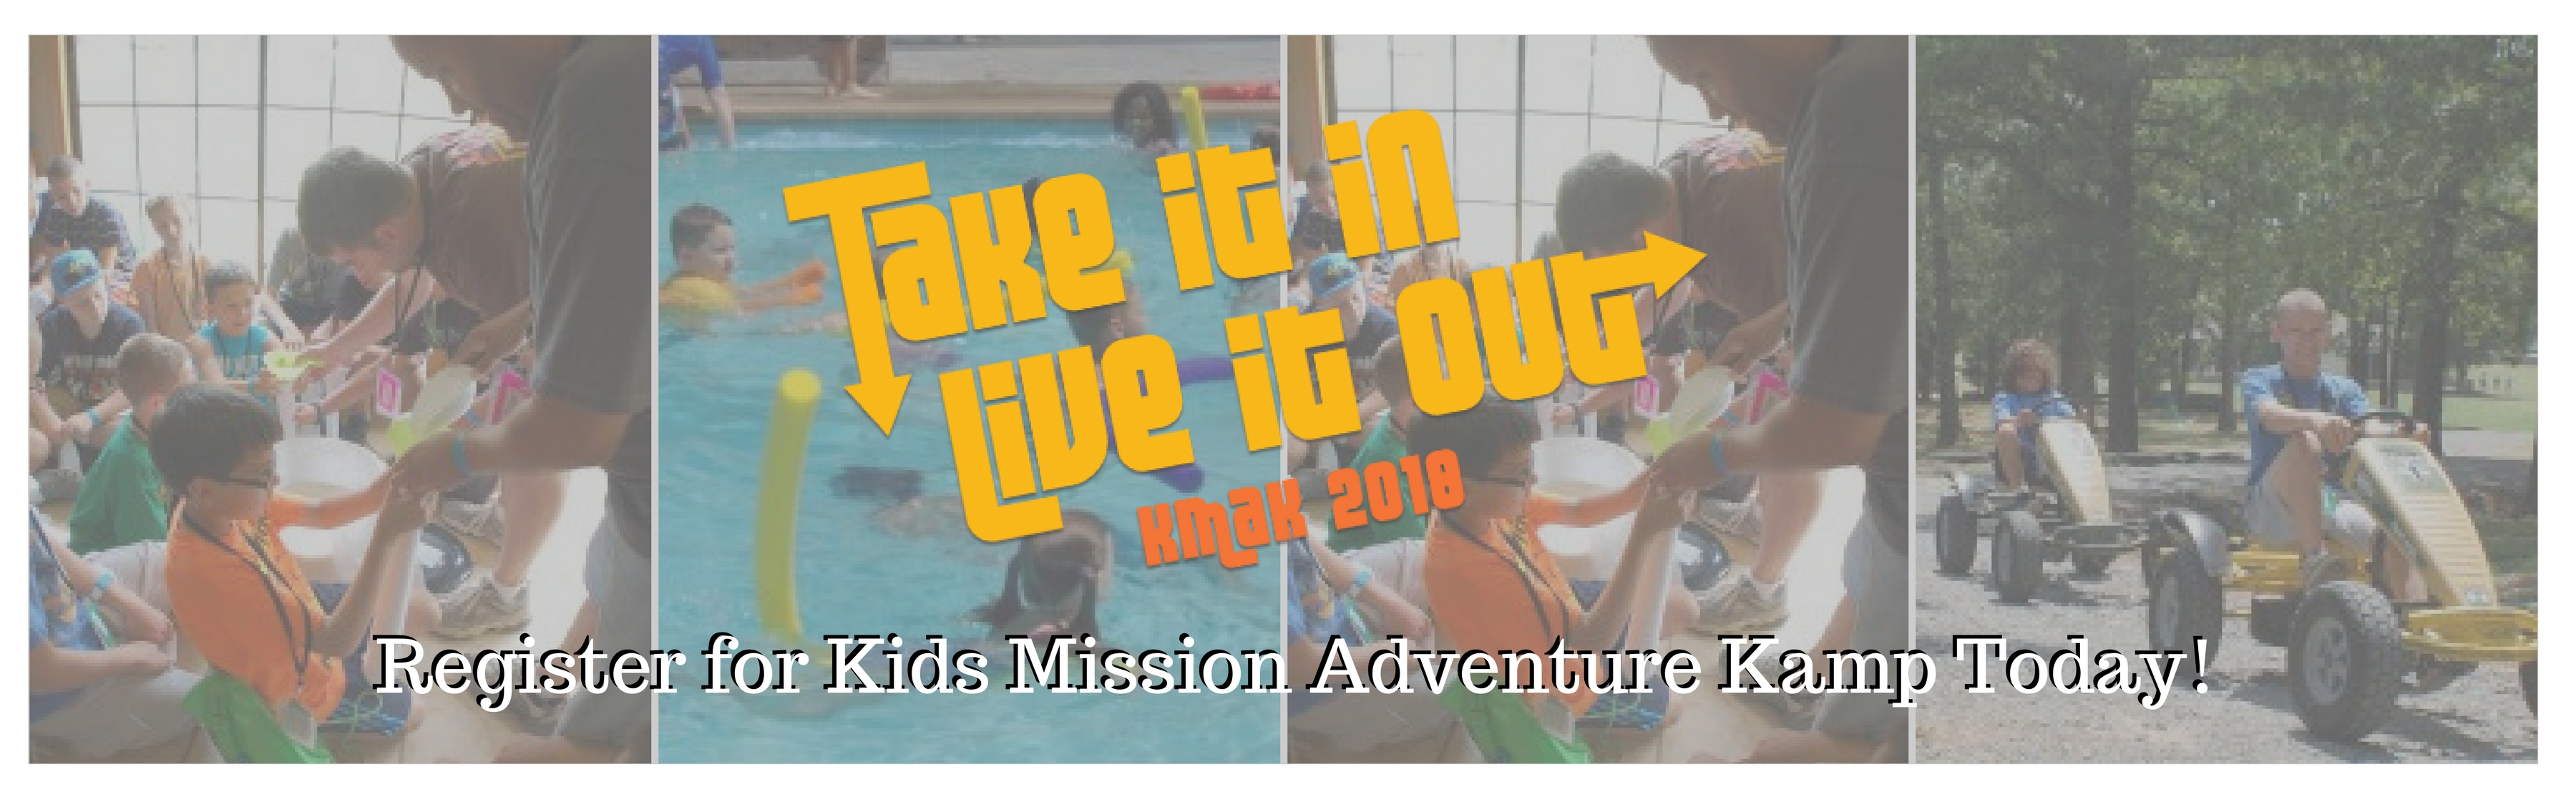 Register for Kids Mission Adventure Kamp